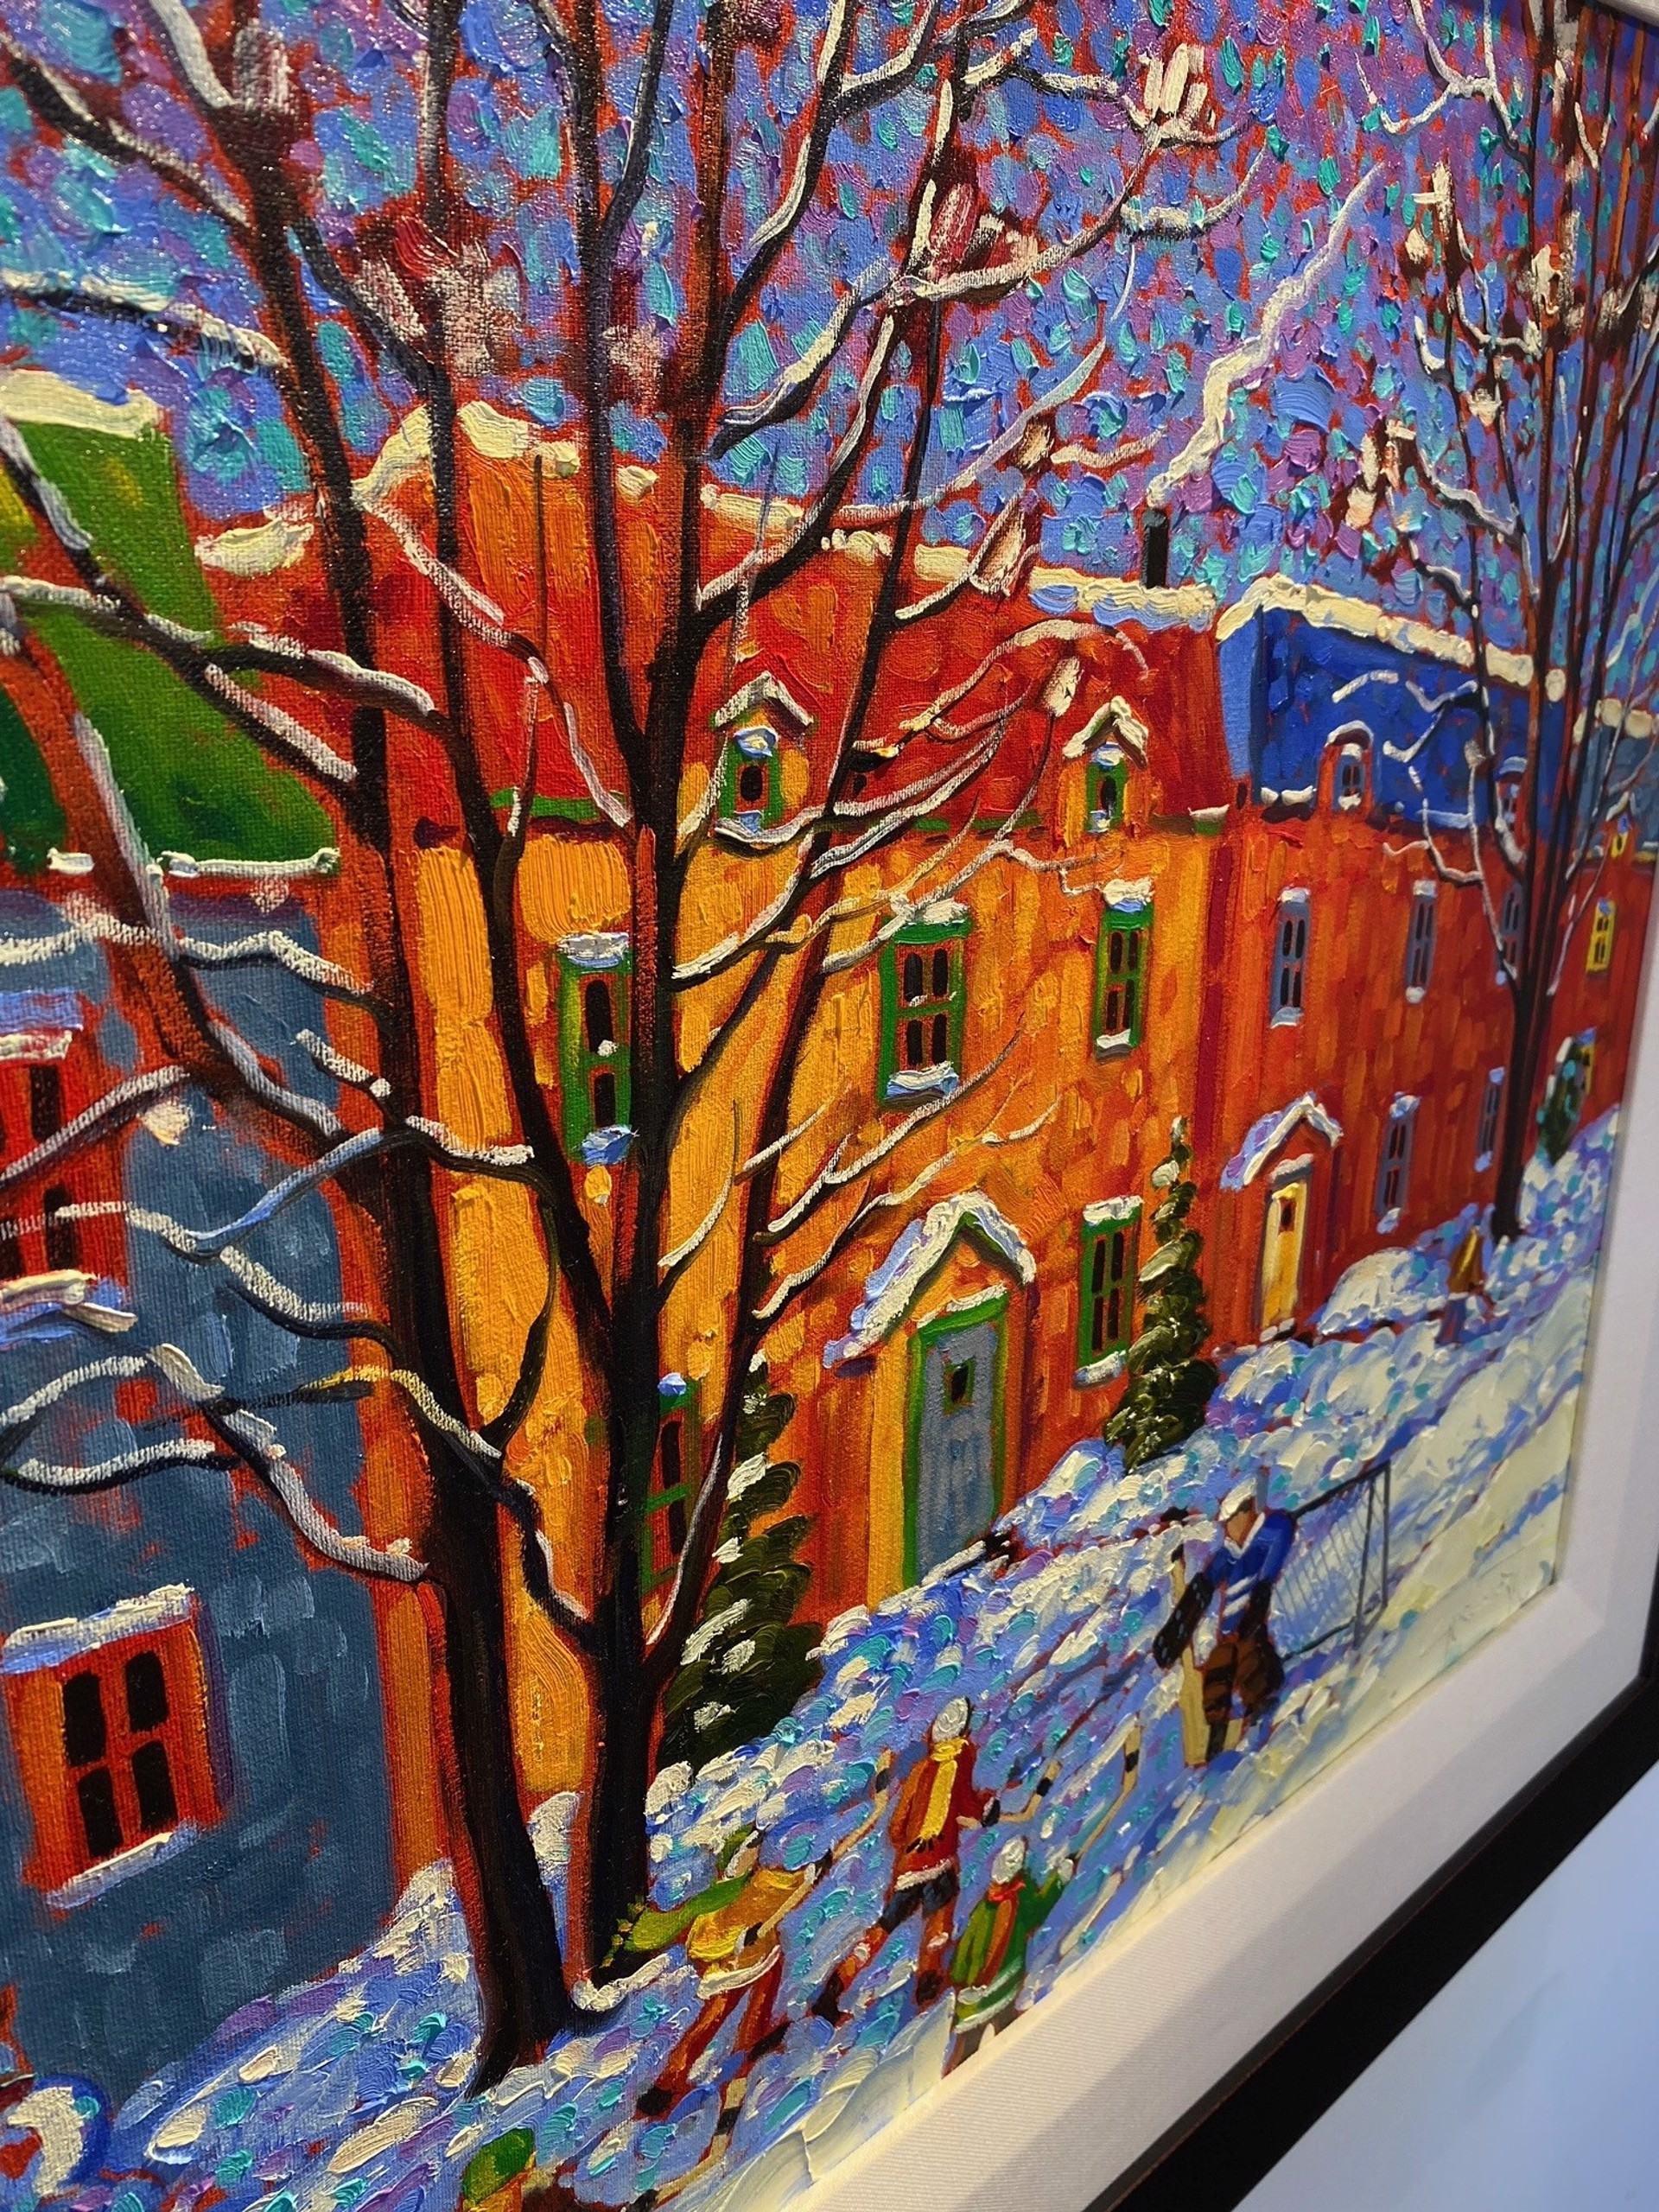 Rod Charlesworth - After A December Snowfall by Historical Art